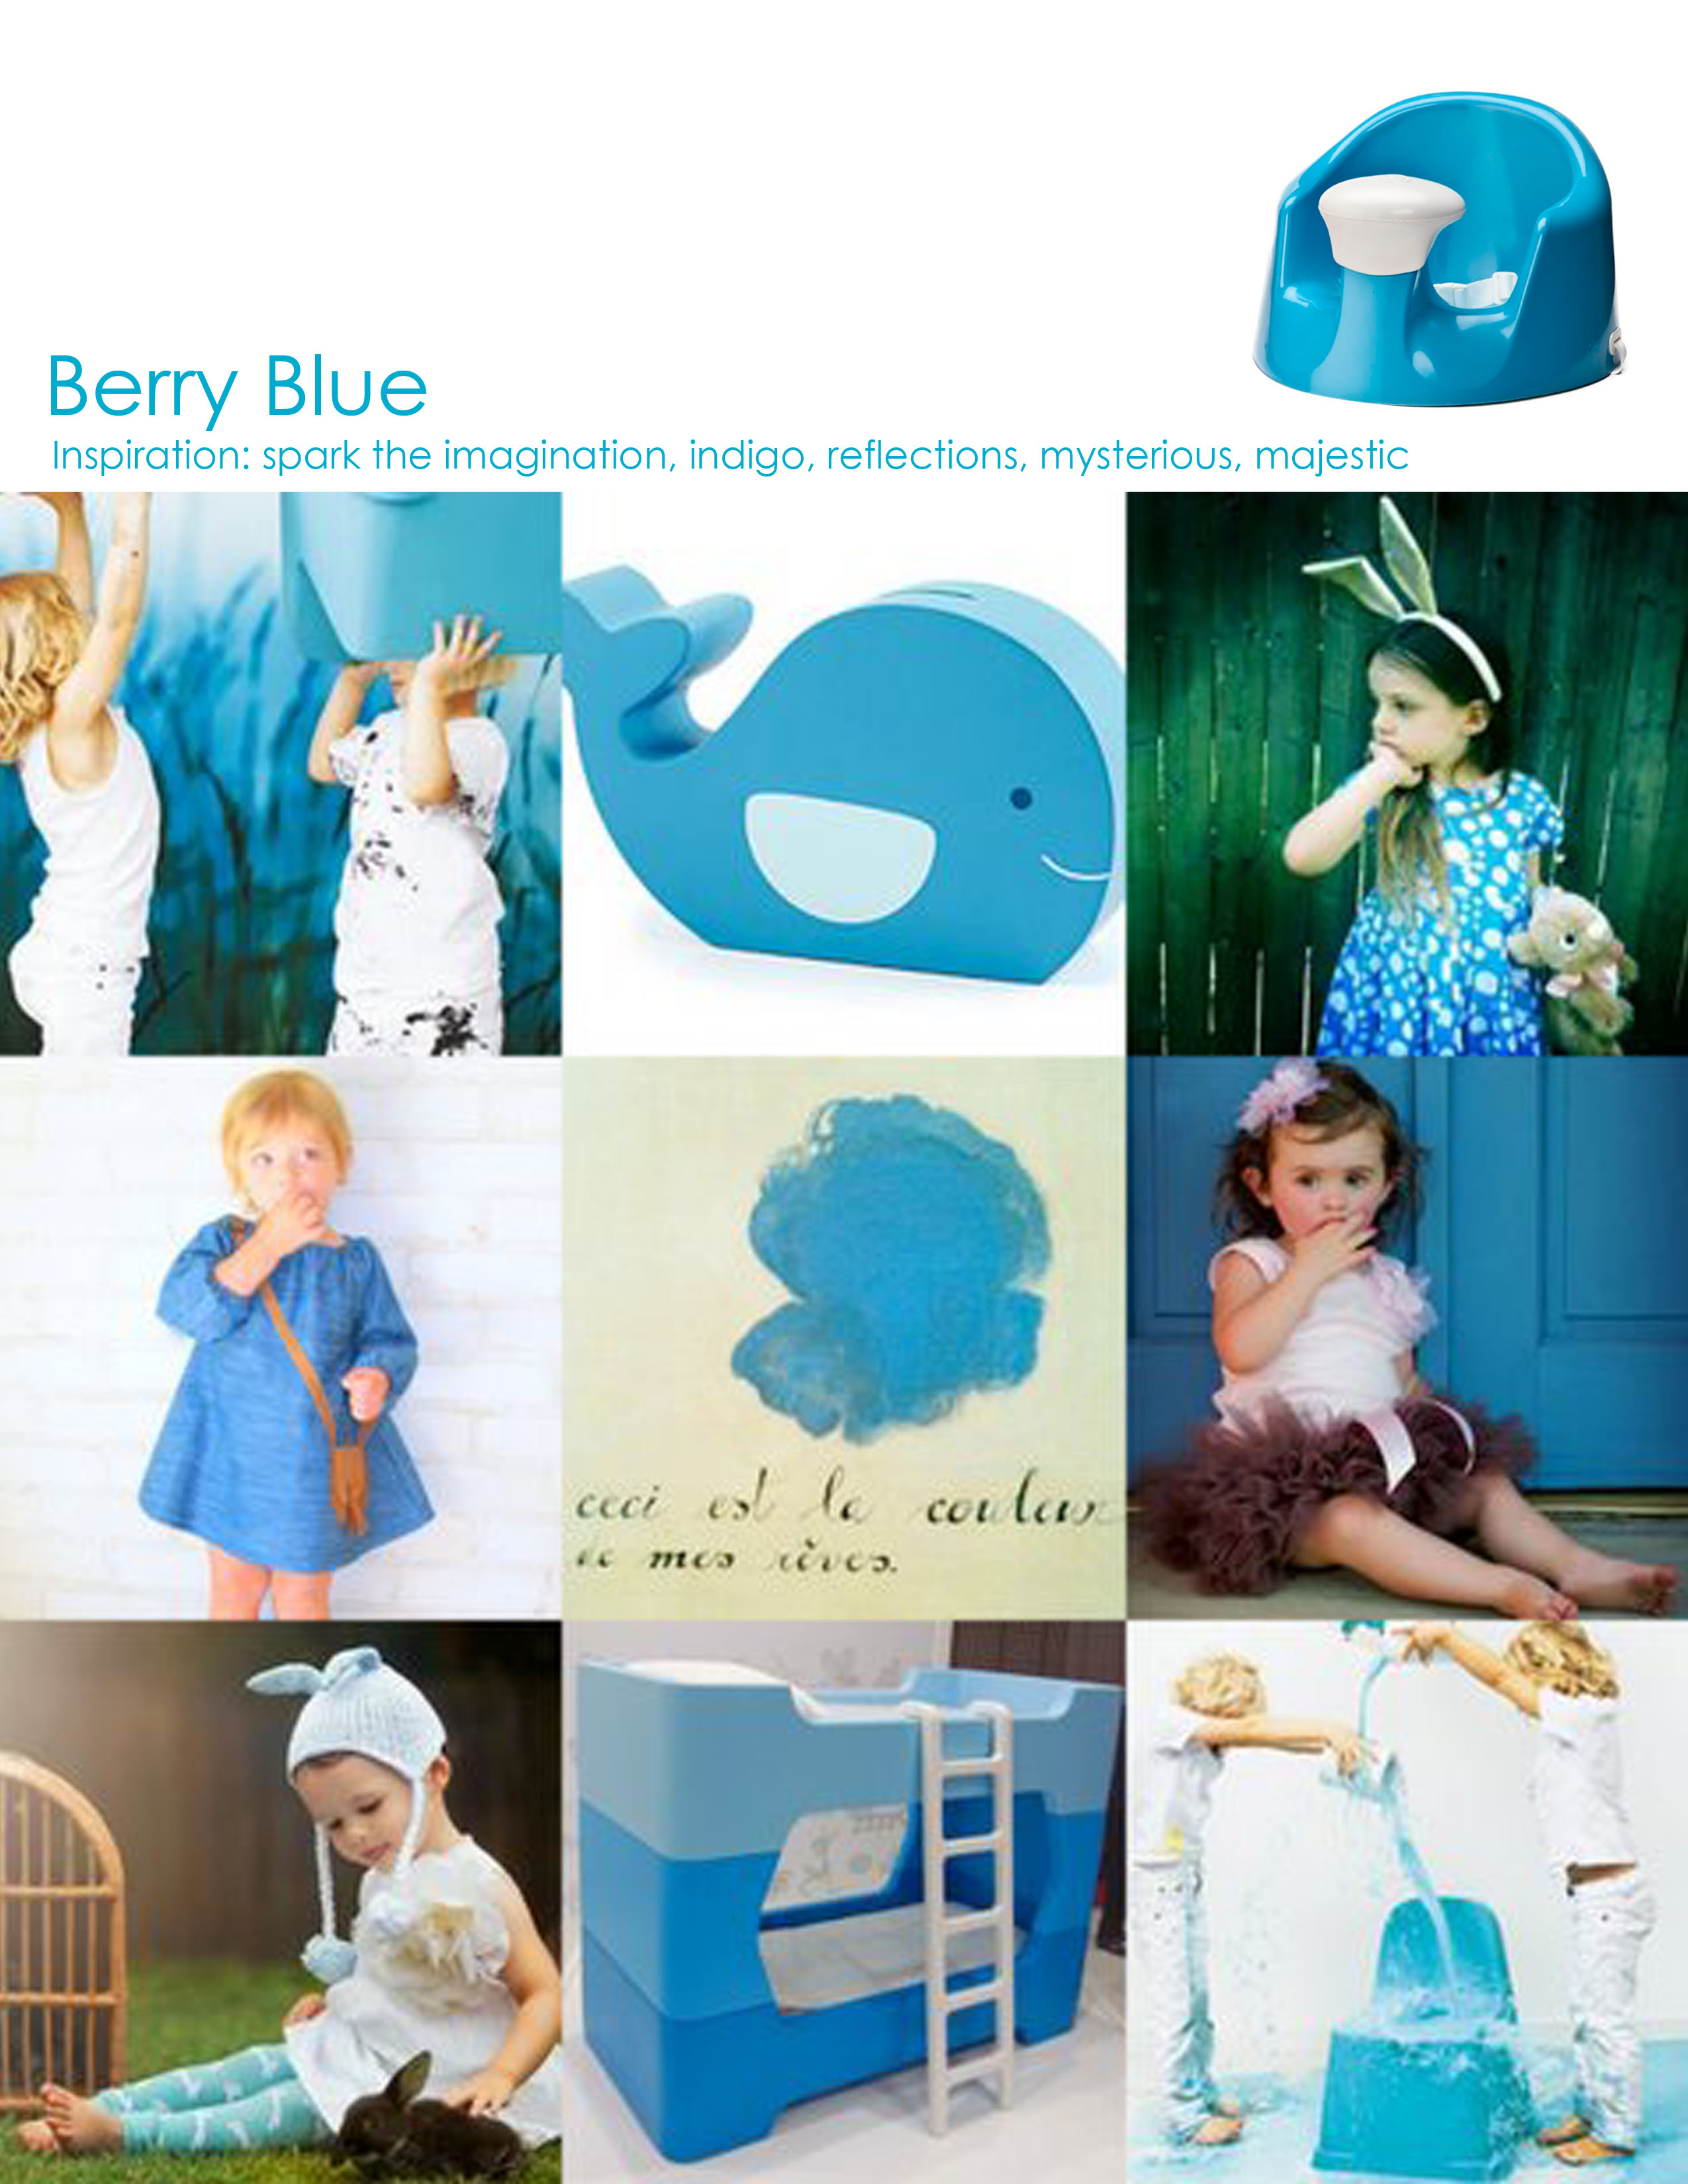 For the love of Berry Blue!